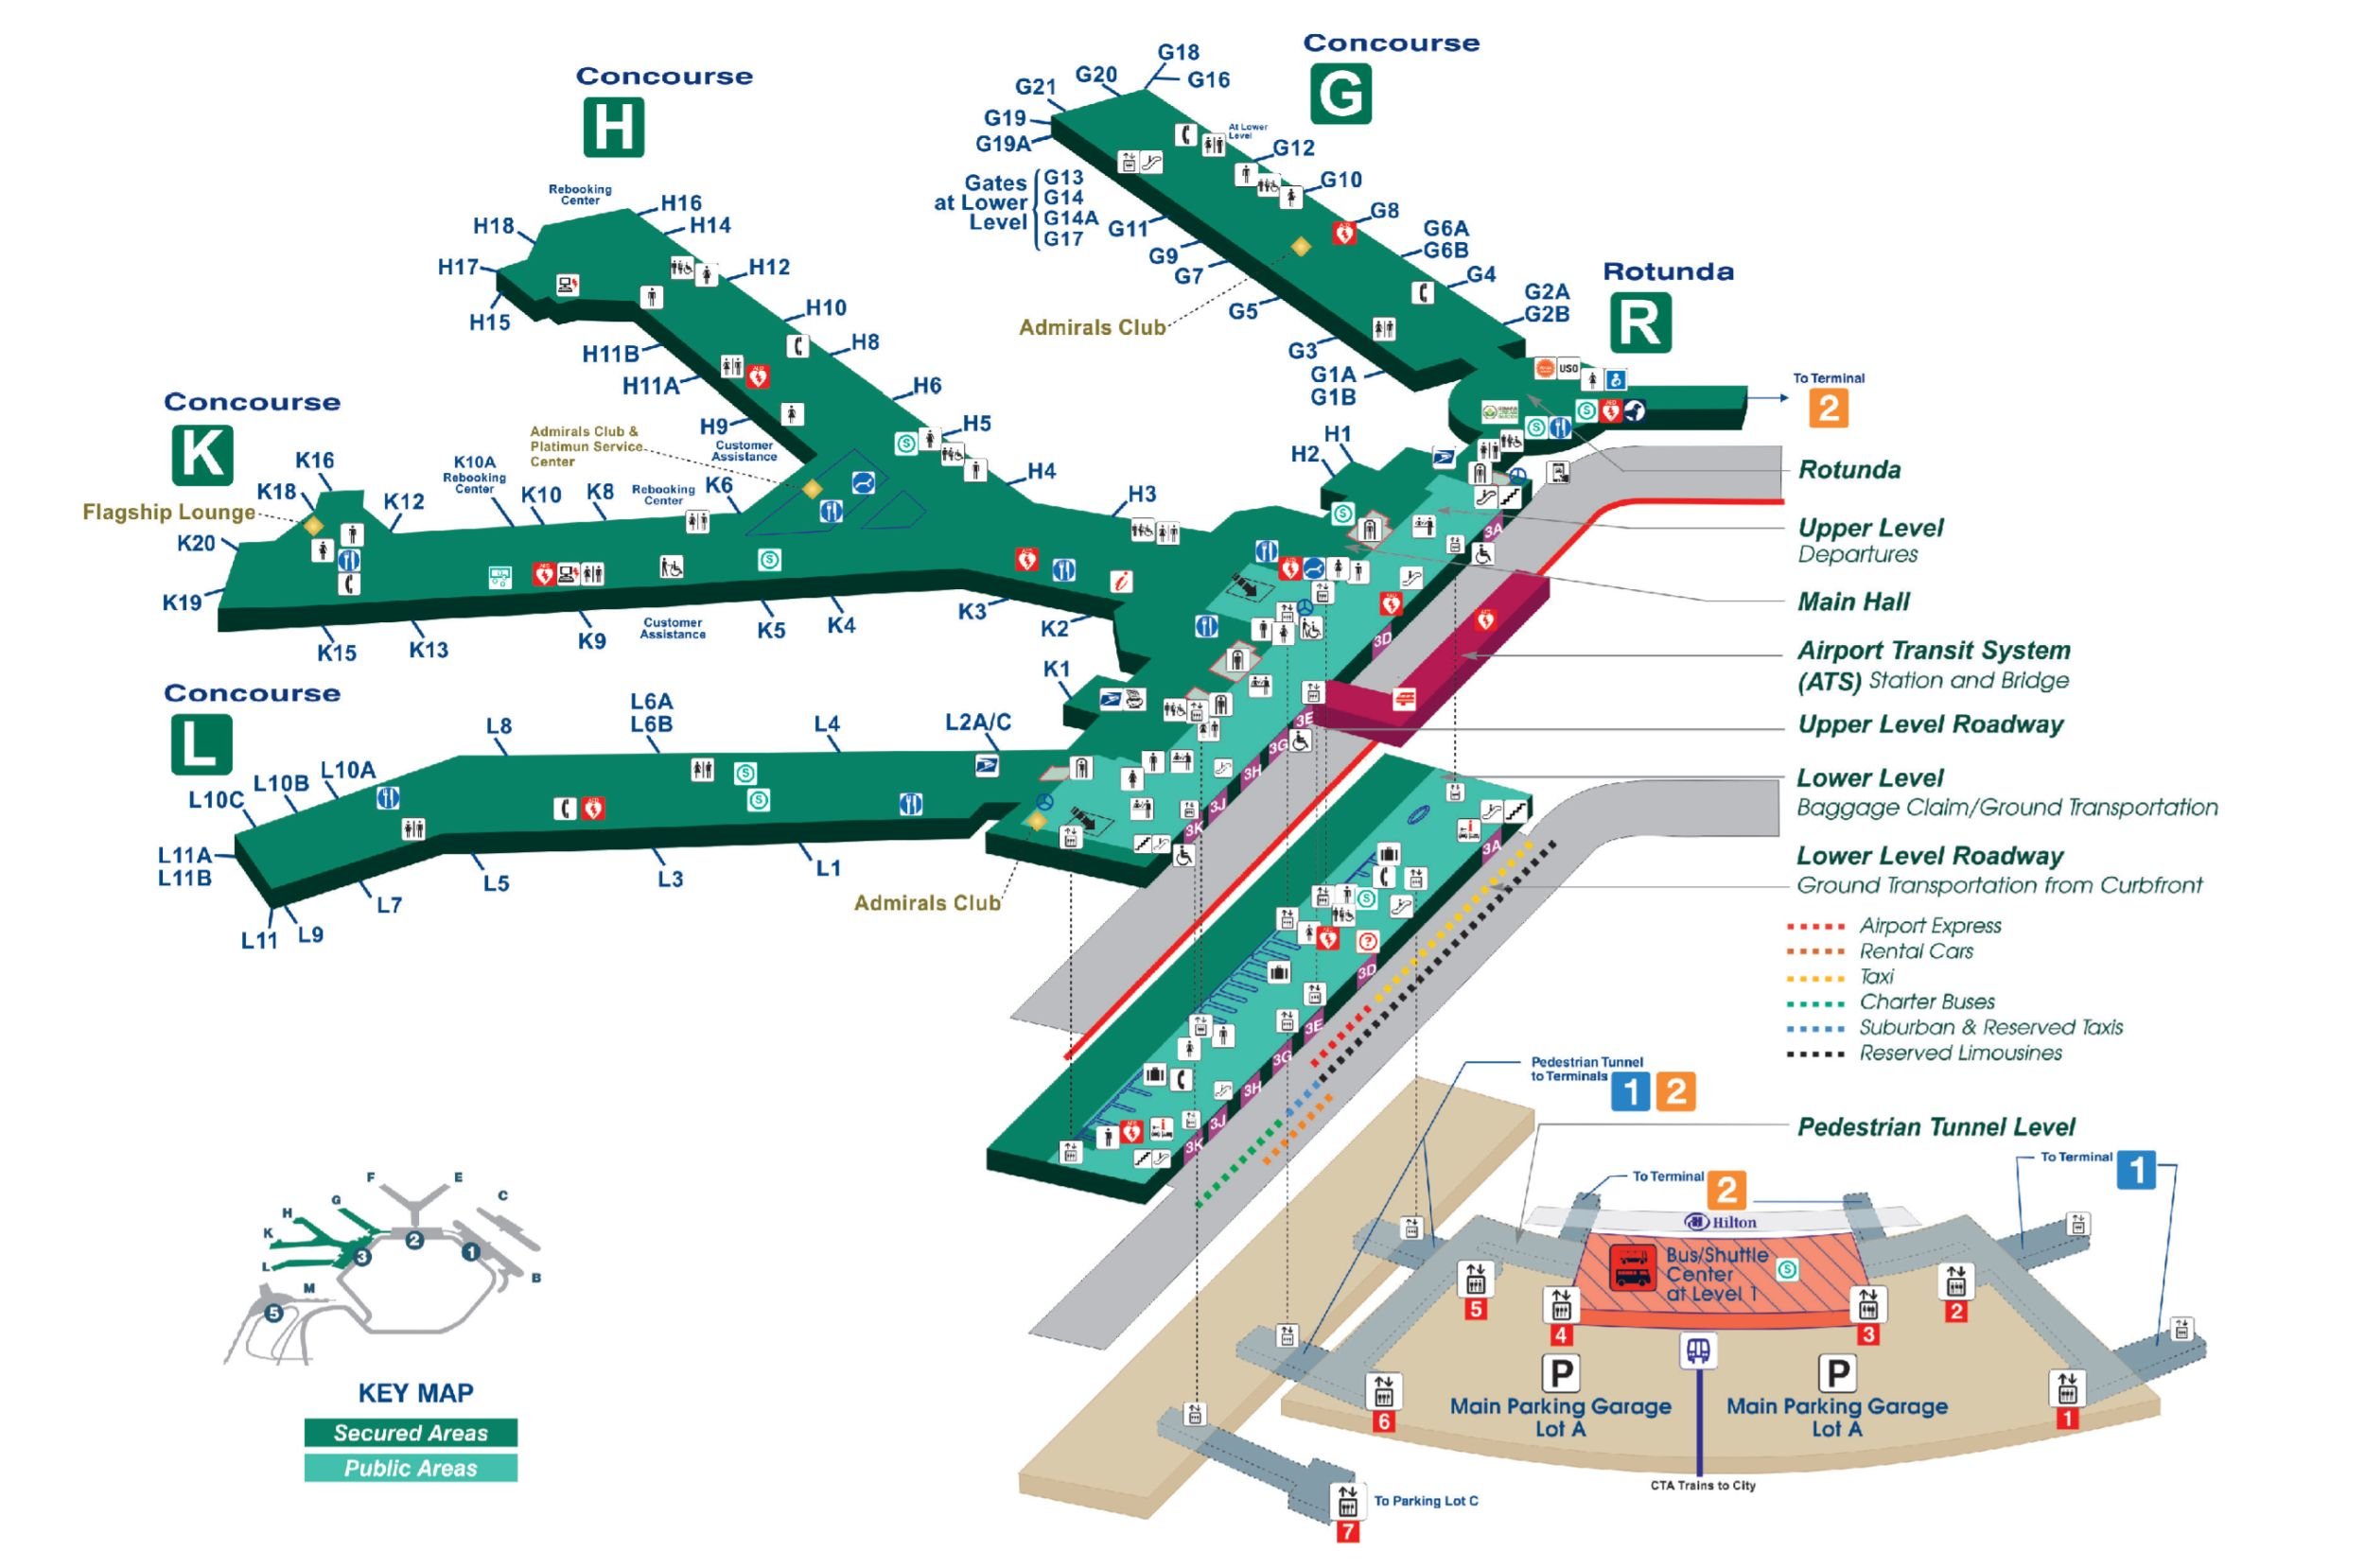 ORD Terminal 3 Map - Gate to Adventures